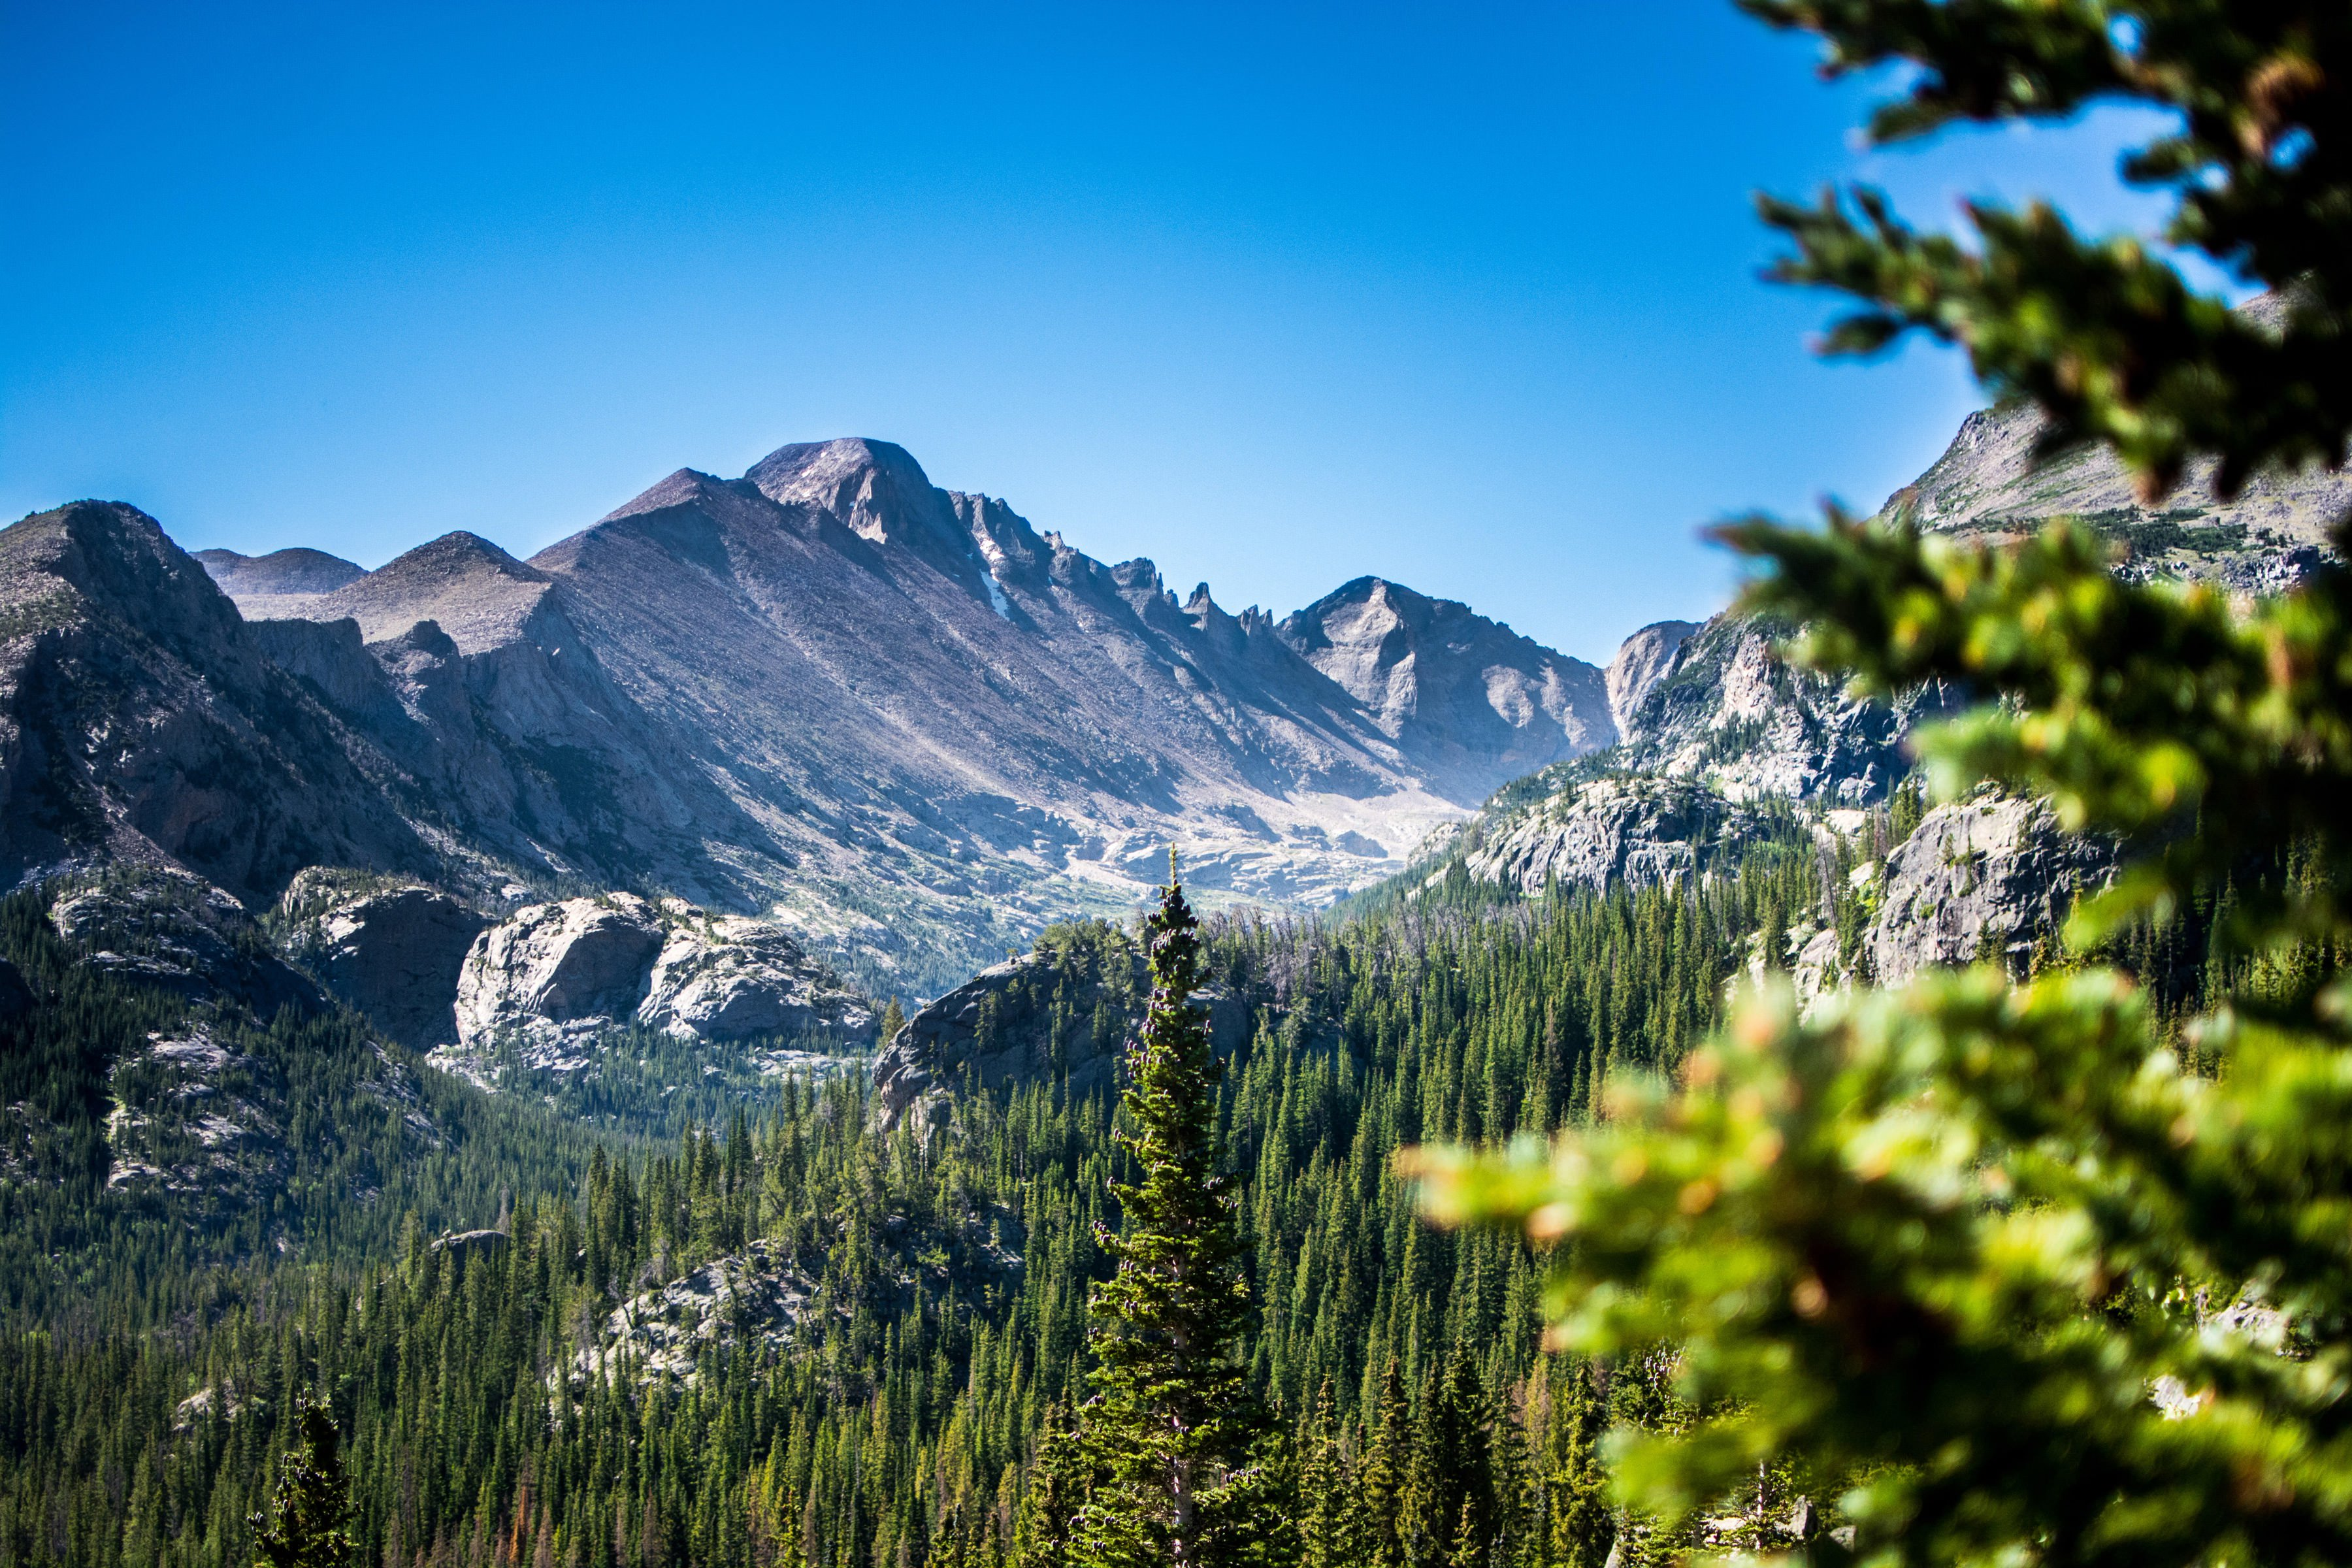 region/background-images/beautiful-landscape-of-rocky-mountains-national-park-colorado.jpg